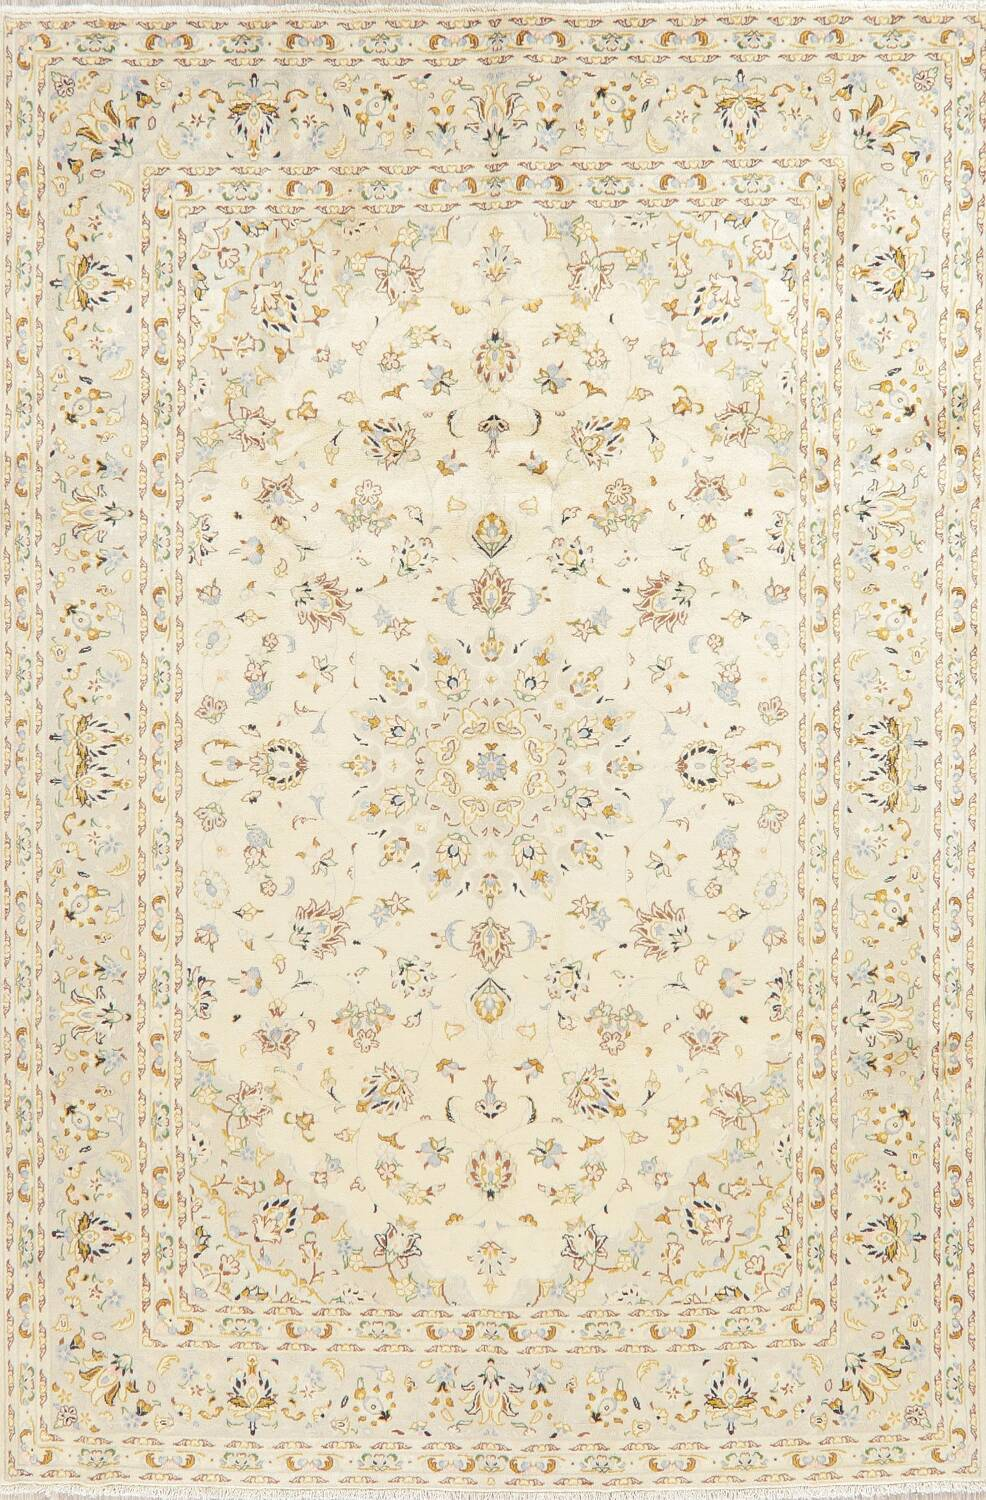 Floral Kashan Persian Area Rug 6x10 image 1